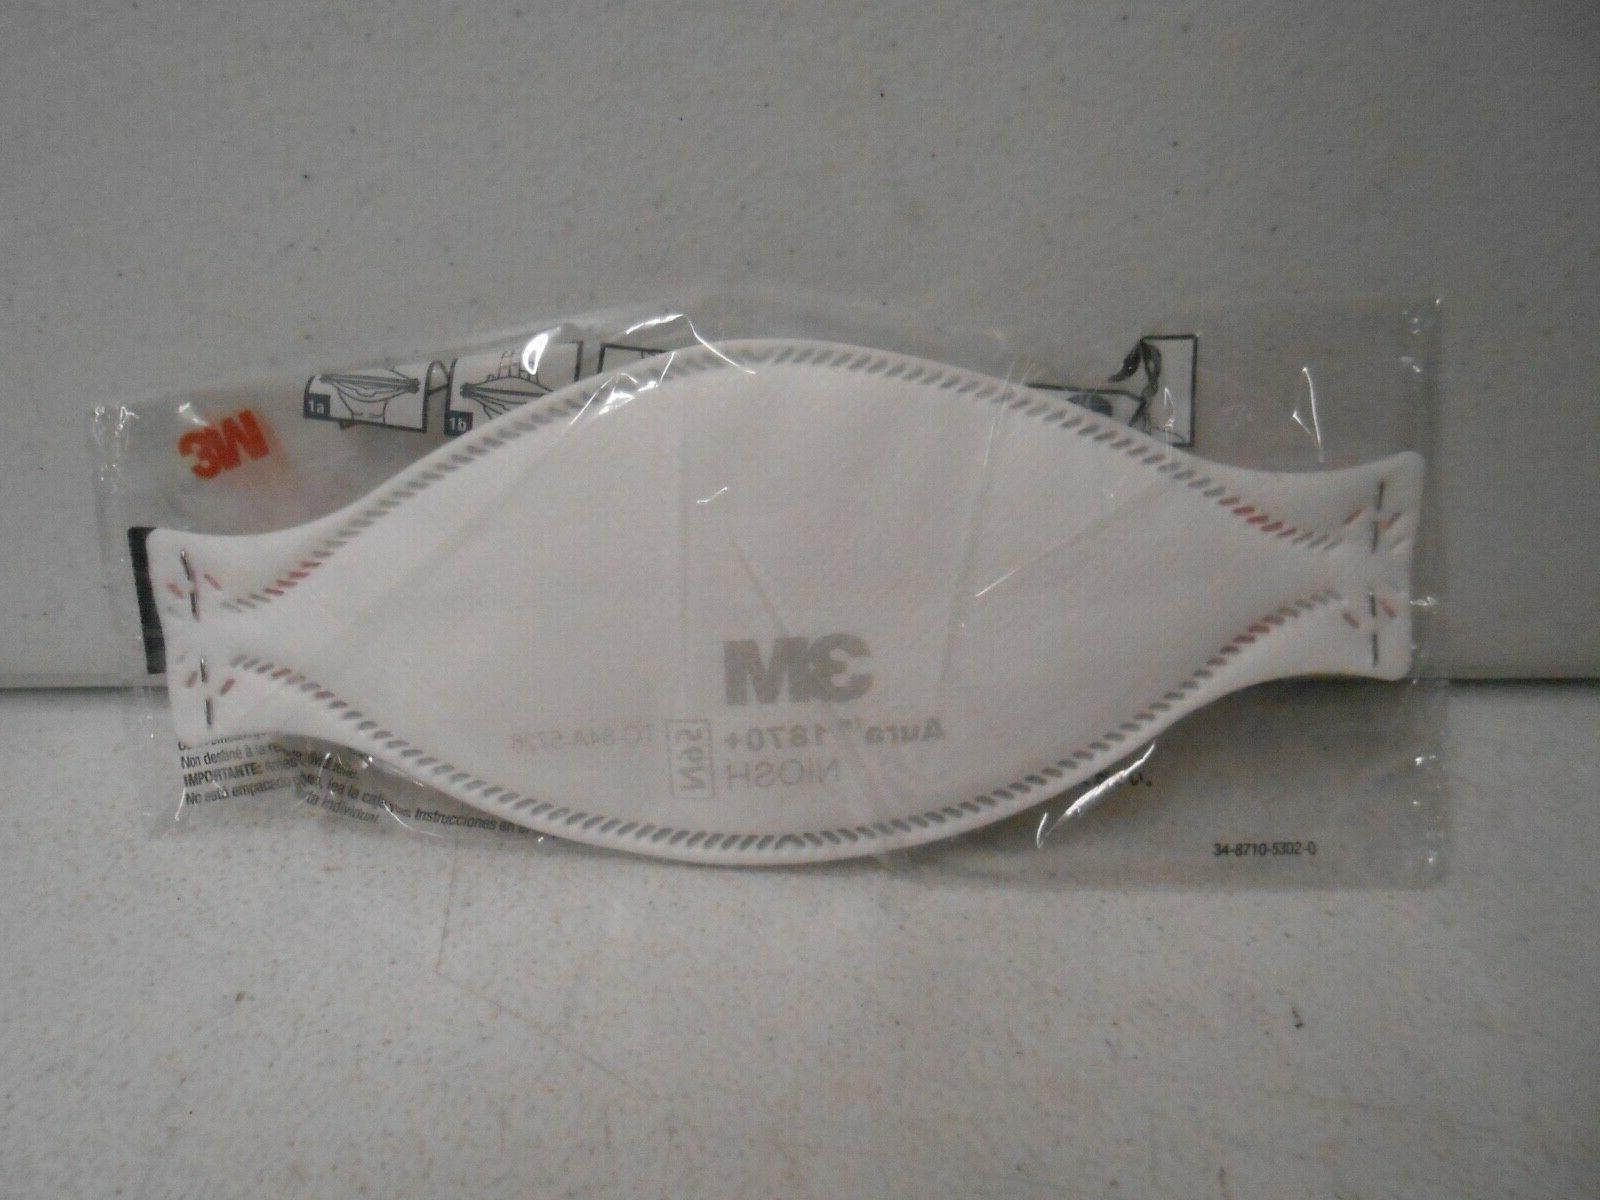 1 n95 1870 particulate respirator surgical face